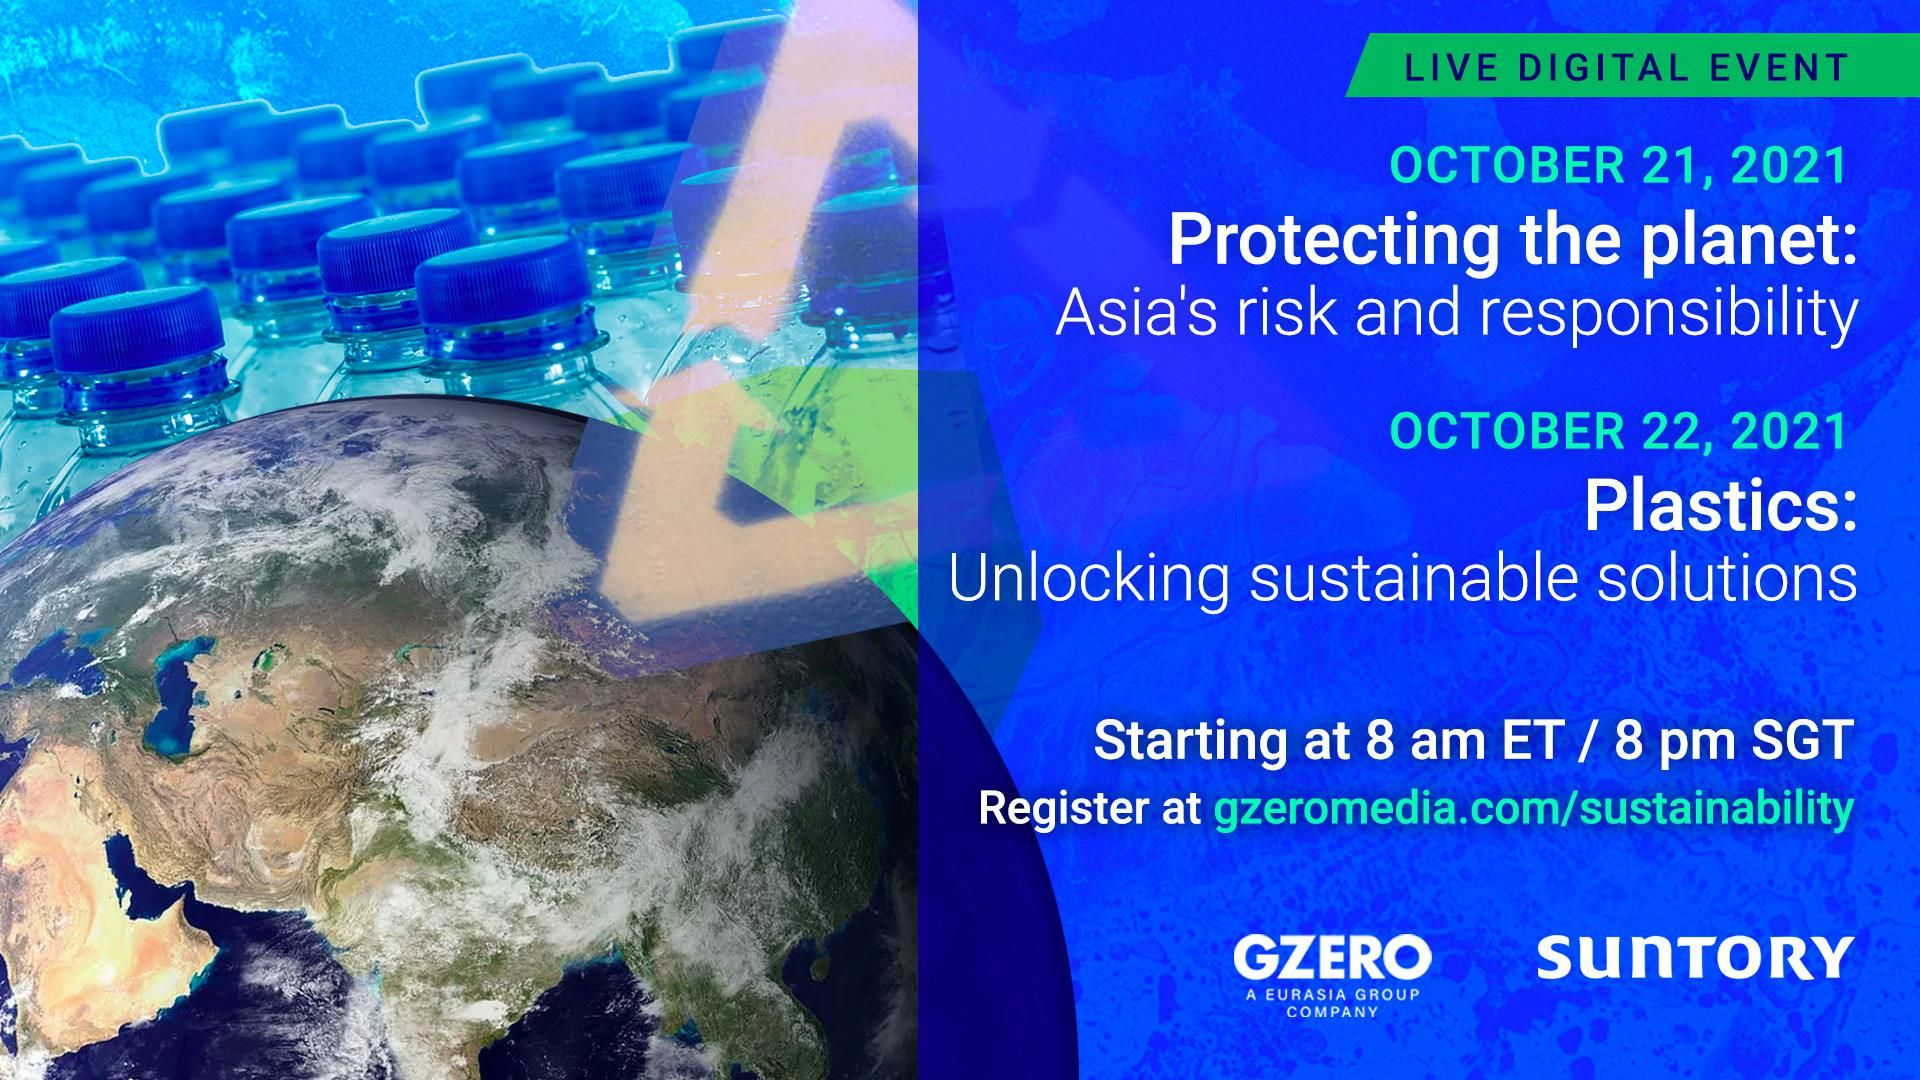 2 live sessions of GZERO's Sustainable Leaders Summit, Oct 21 and 22, starting at 8 am ET / 8 pm SGT each day, sponsored by Suntory. Register at gzeromedia.com/suntory